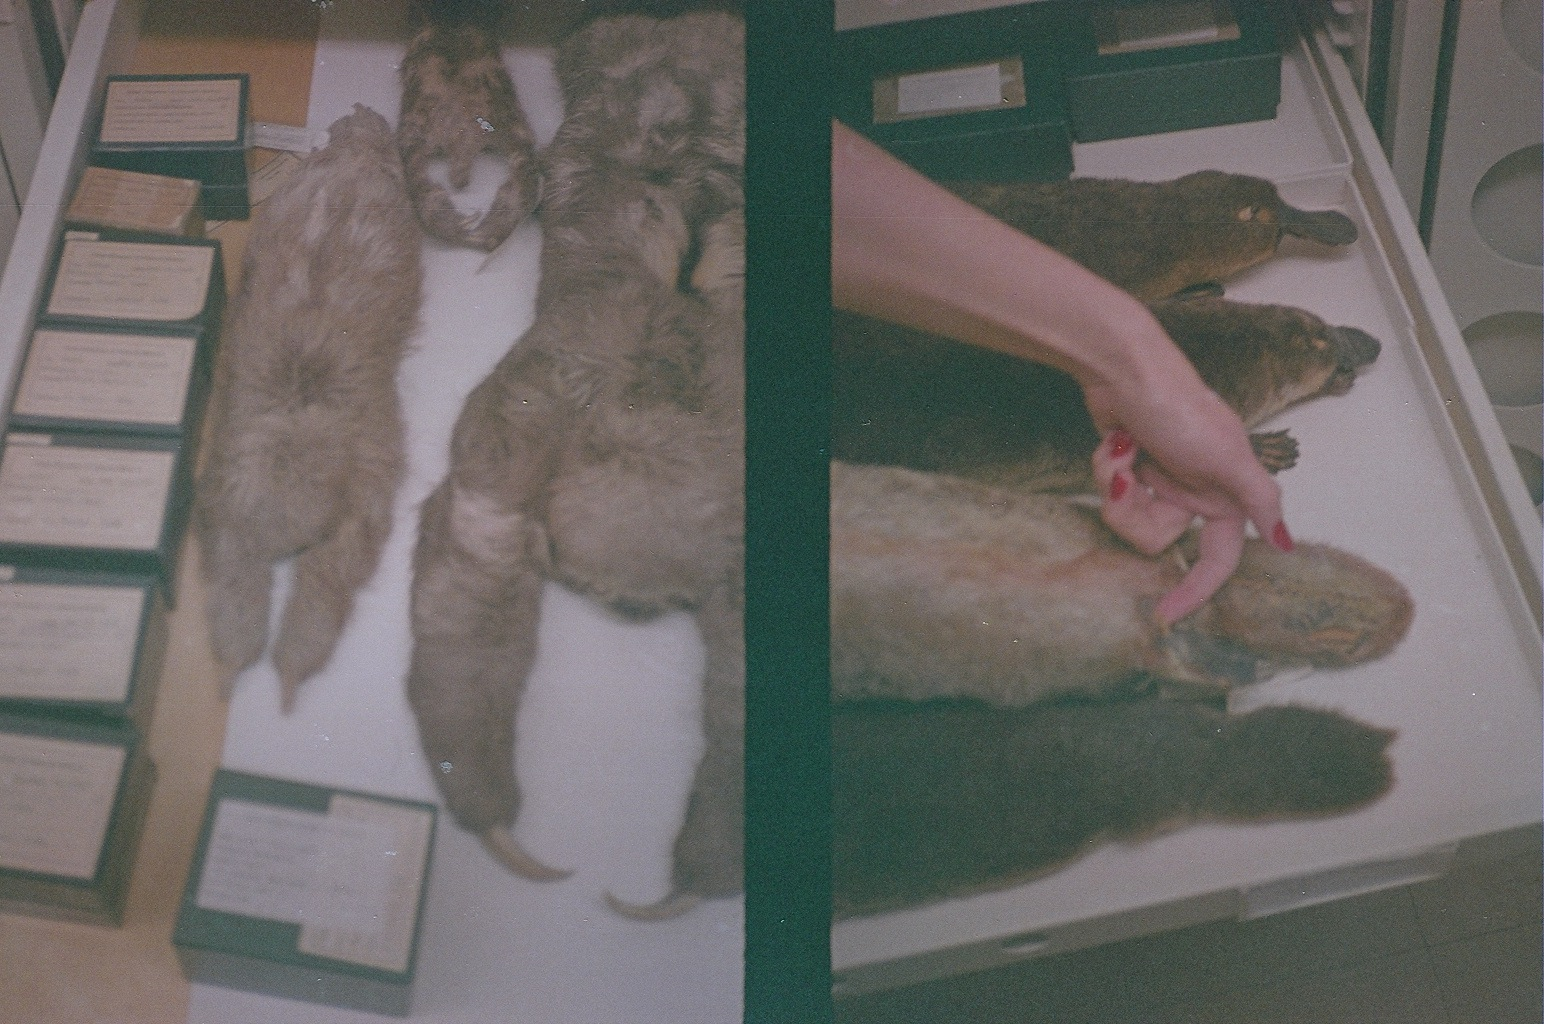 Left: two-toed sloth study skins. Right: platypus study skins.Taken at the Field Museum, October 2013. Canon Demi (half-frame) camera with expired film - excuse the dark exposure.